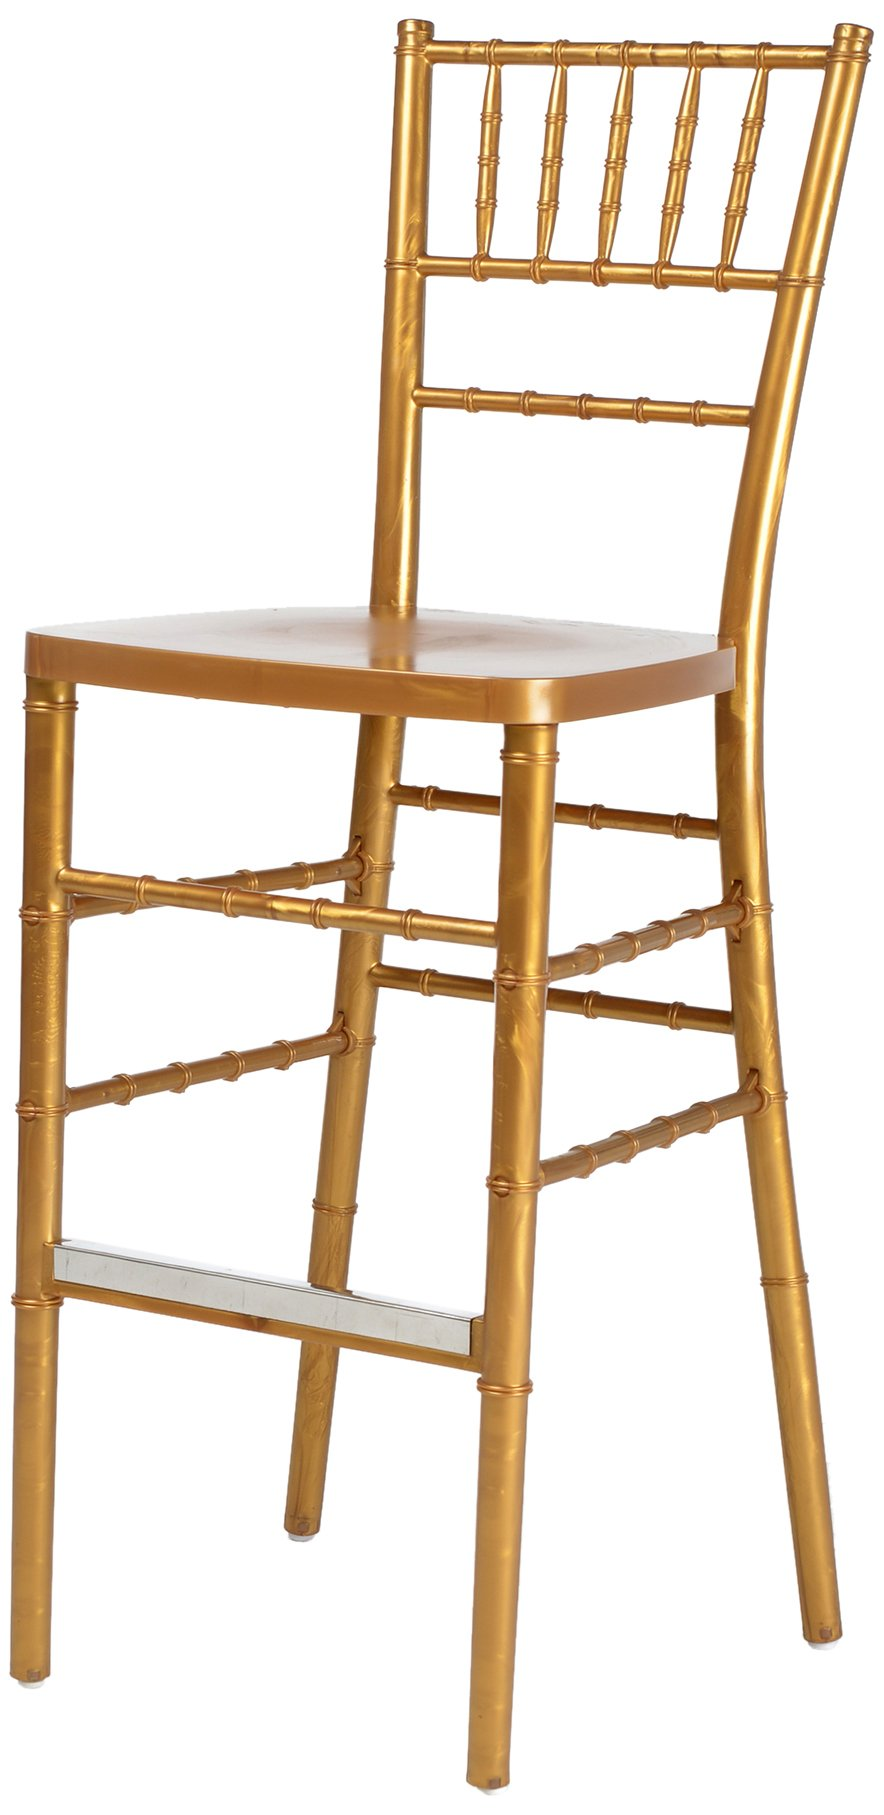 CSP Events RB-800K-GL ''Max'' Chiavari Chair Steel Core with ED Resin, 36'' Height, 16'' Width, 16'' Length, Gold